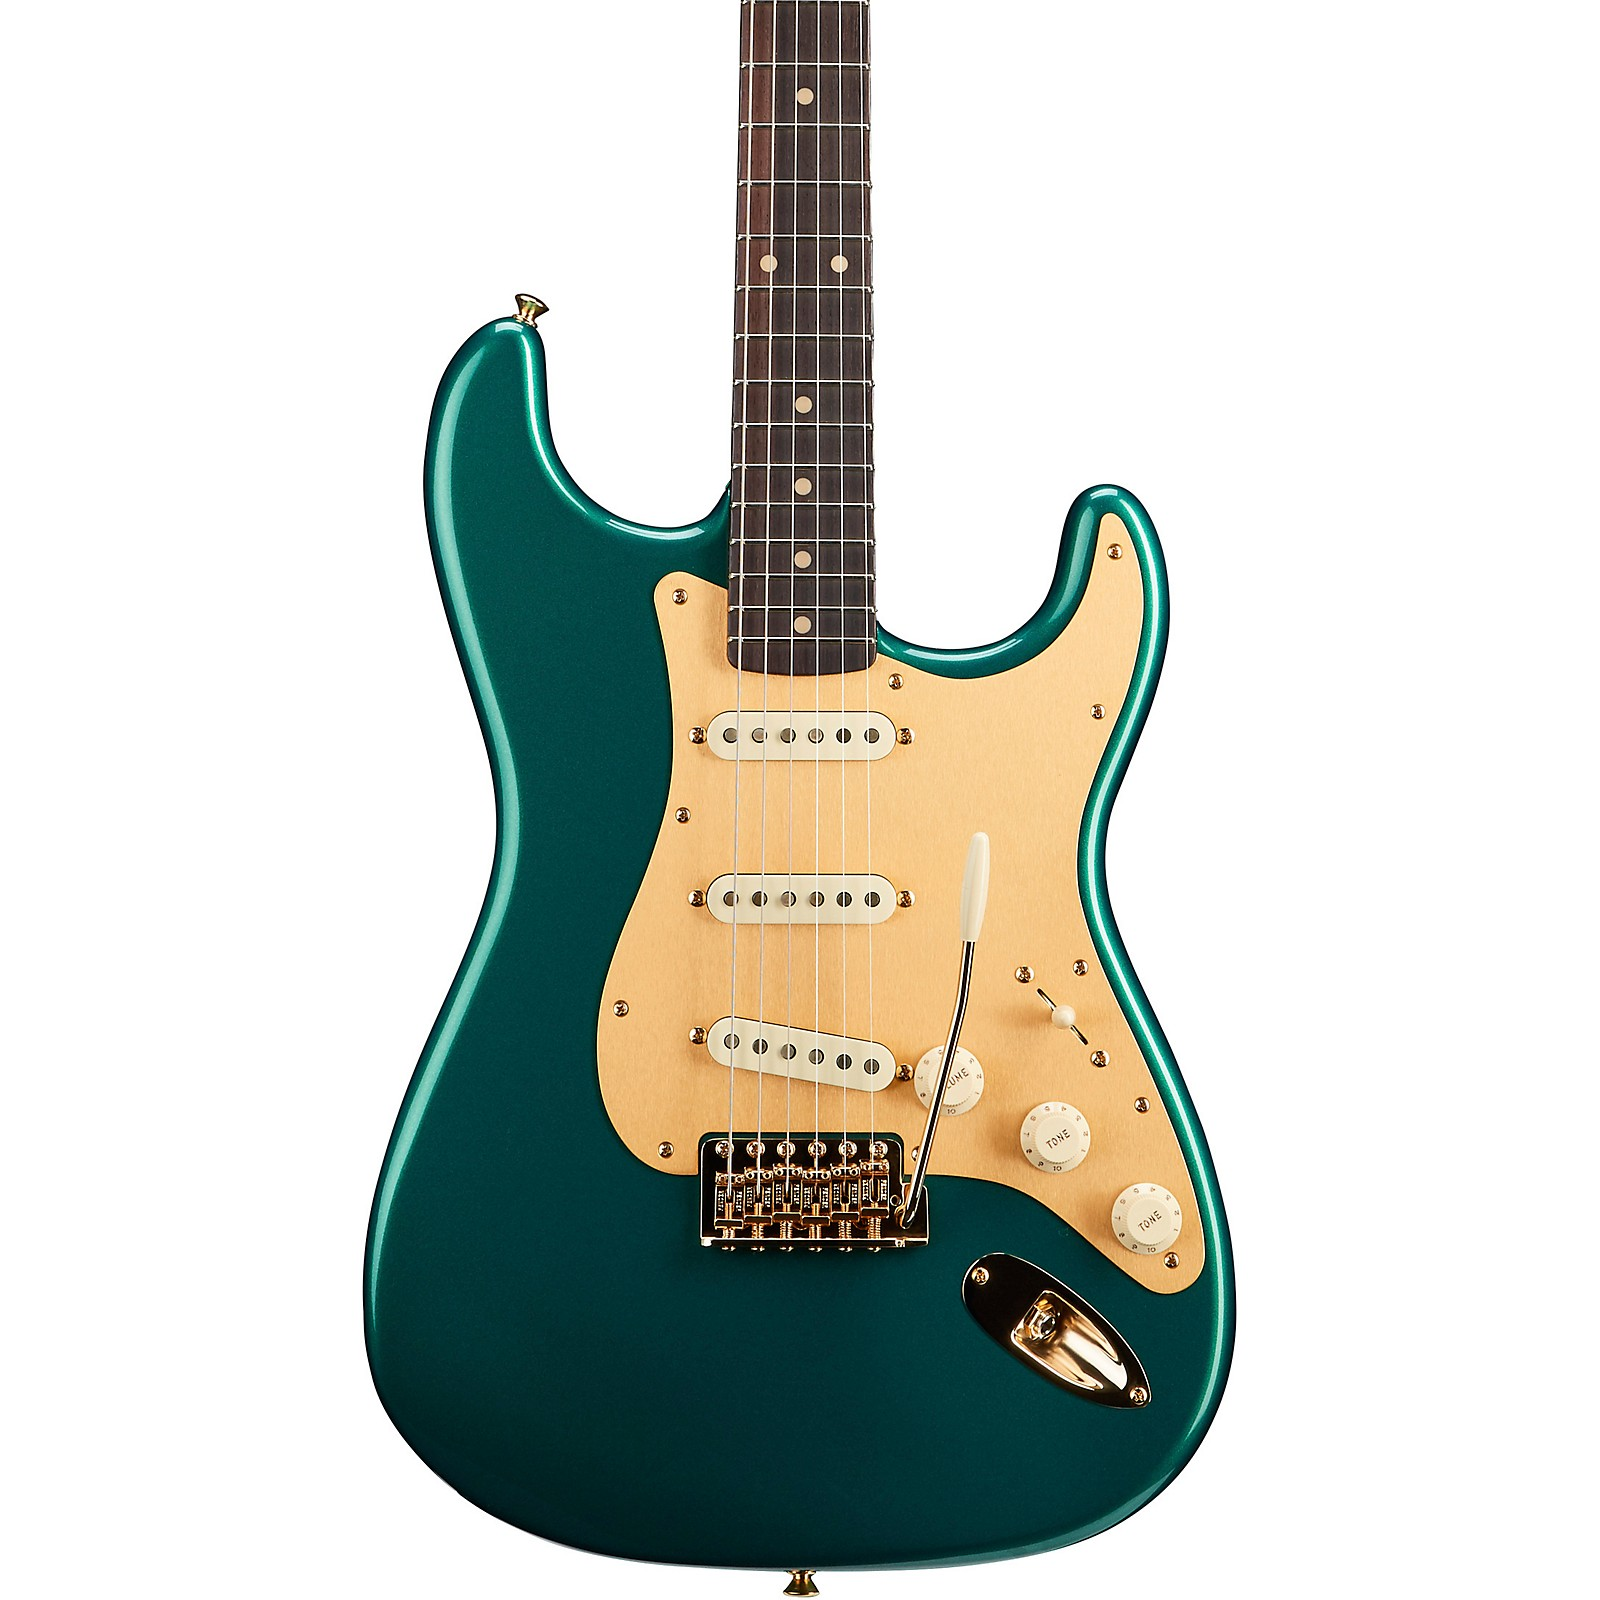 Fender Custom Shop 1960 Stratocaster NOS Time Square Limited-Edition Electric Guitar